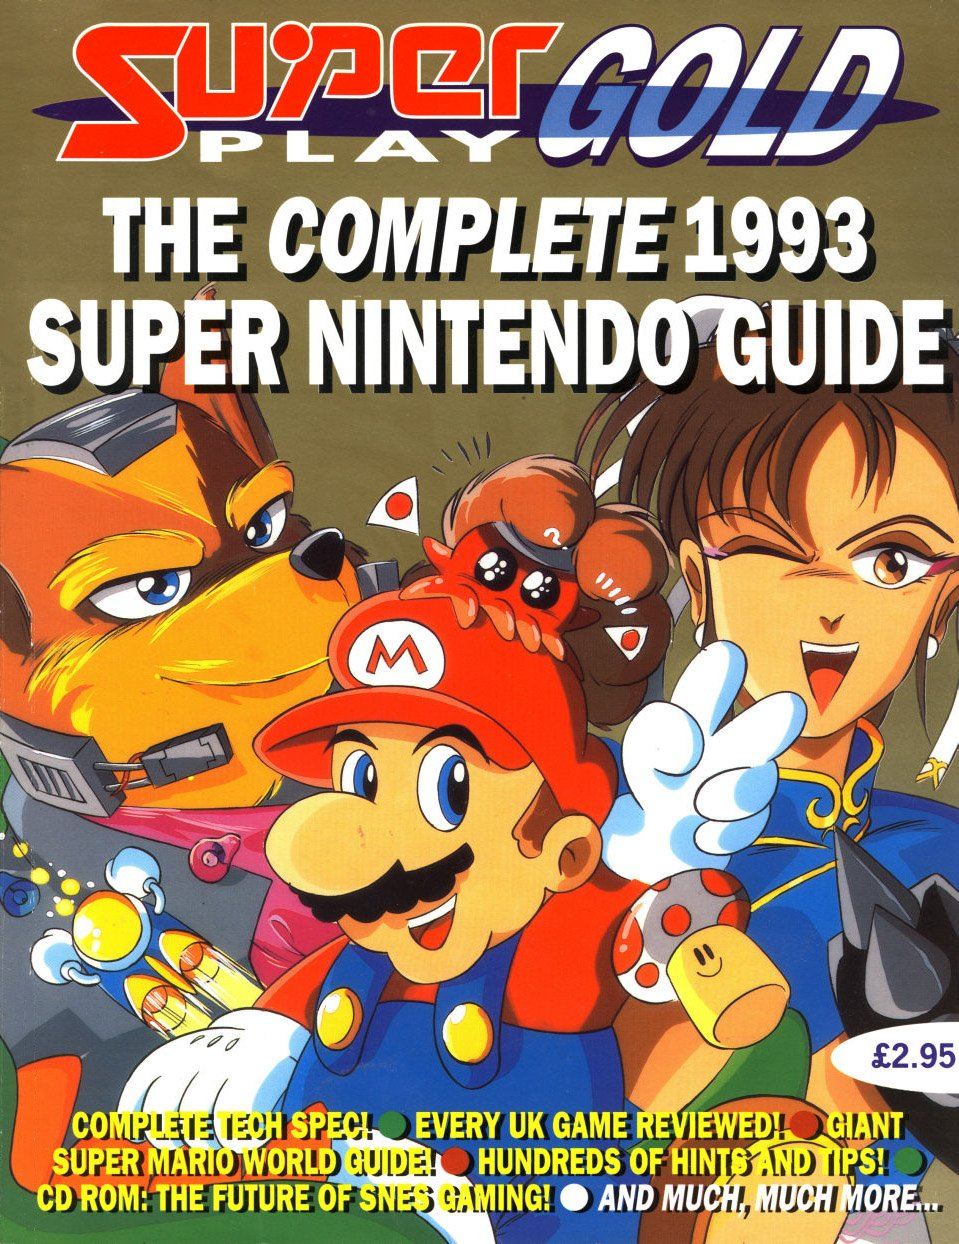 Super Play Gold (1993)